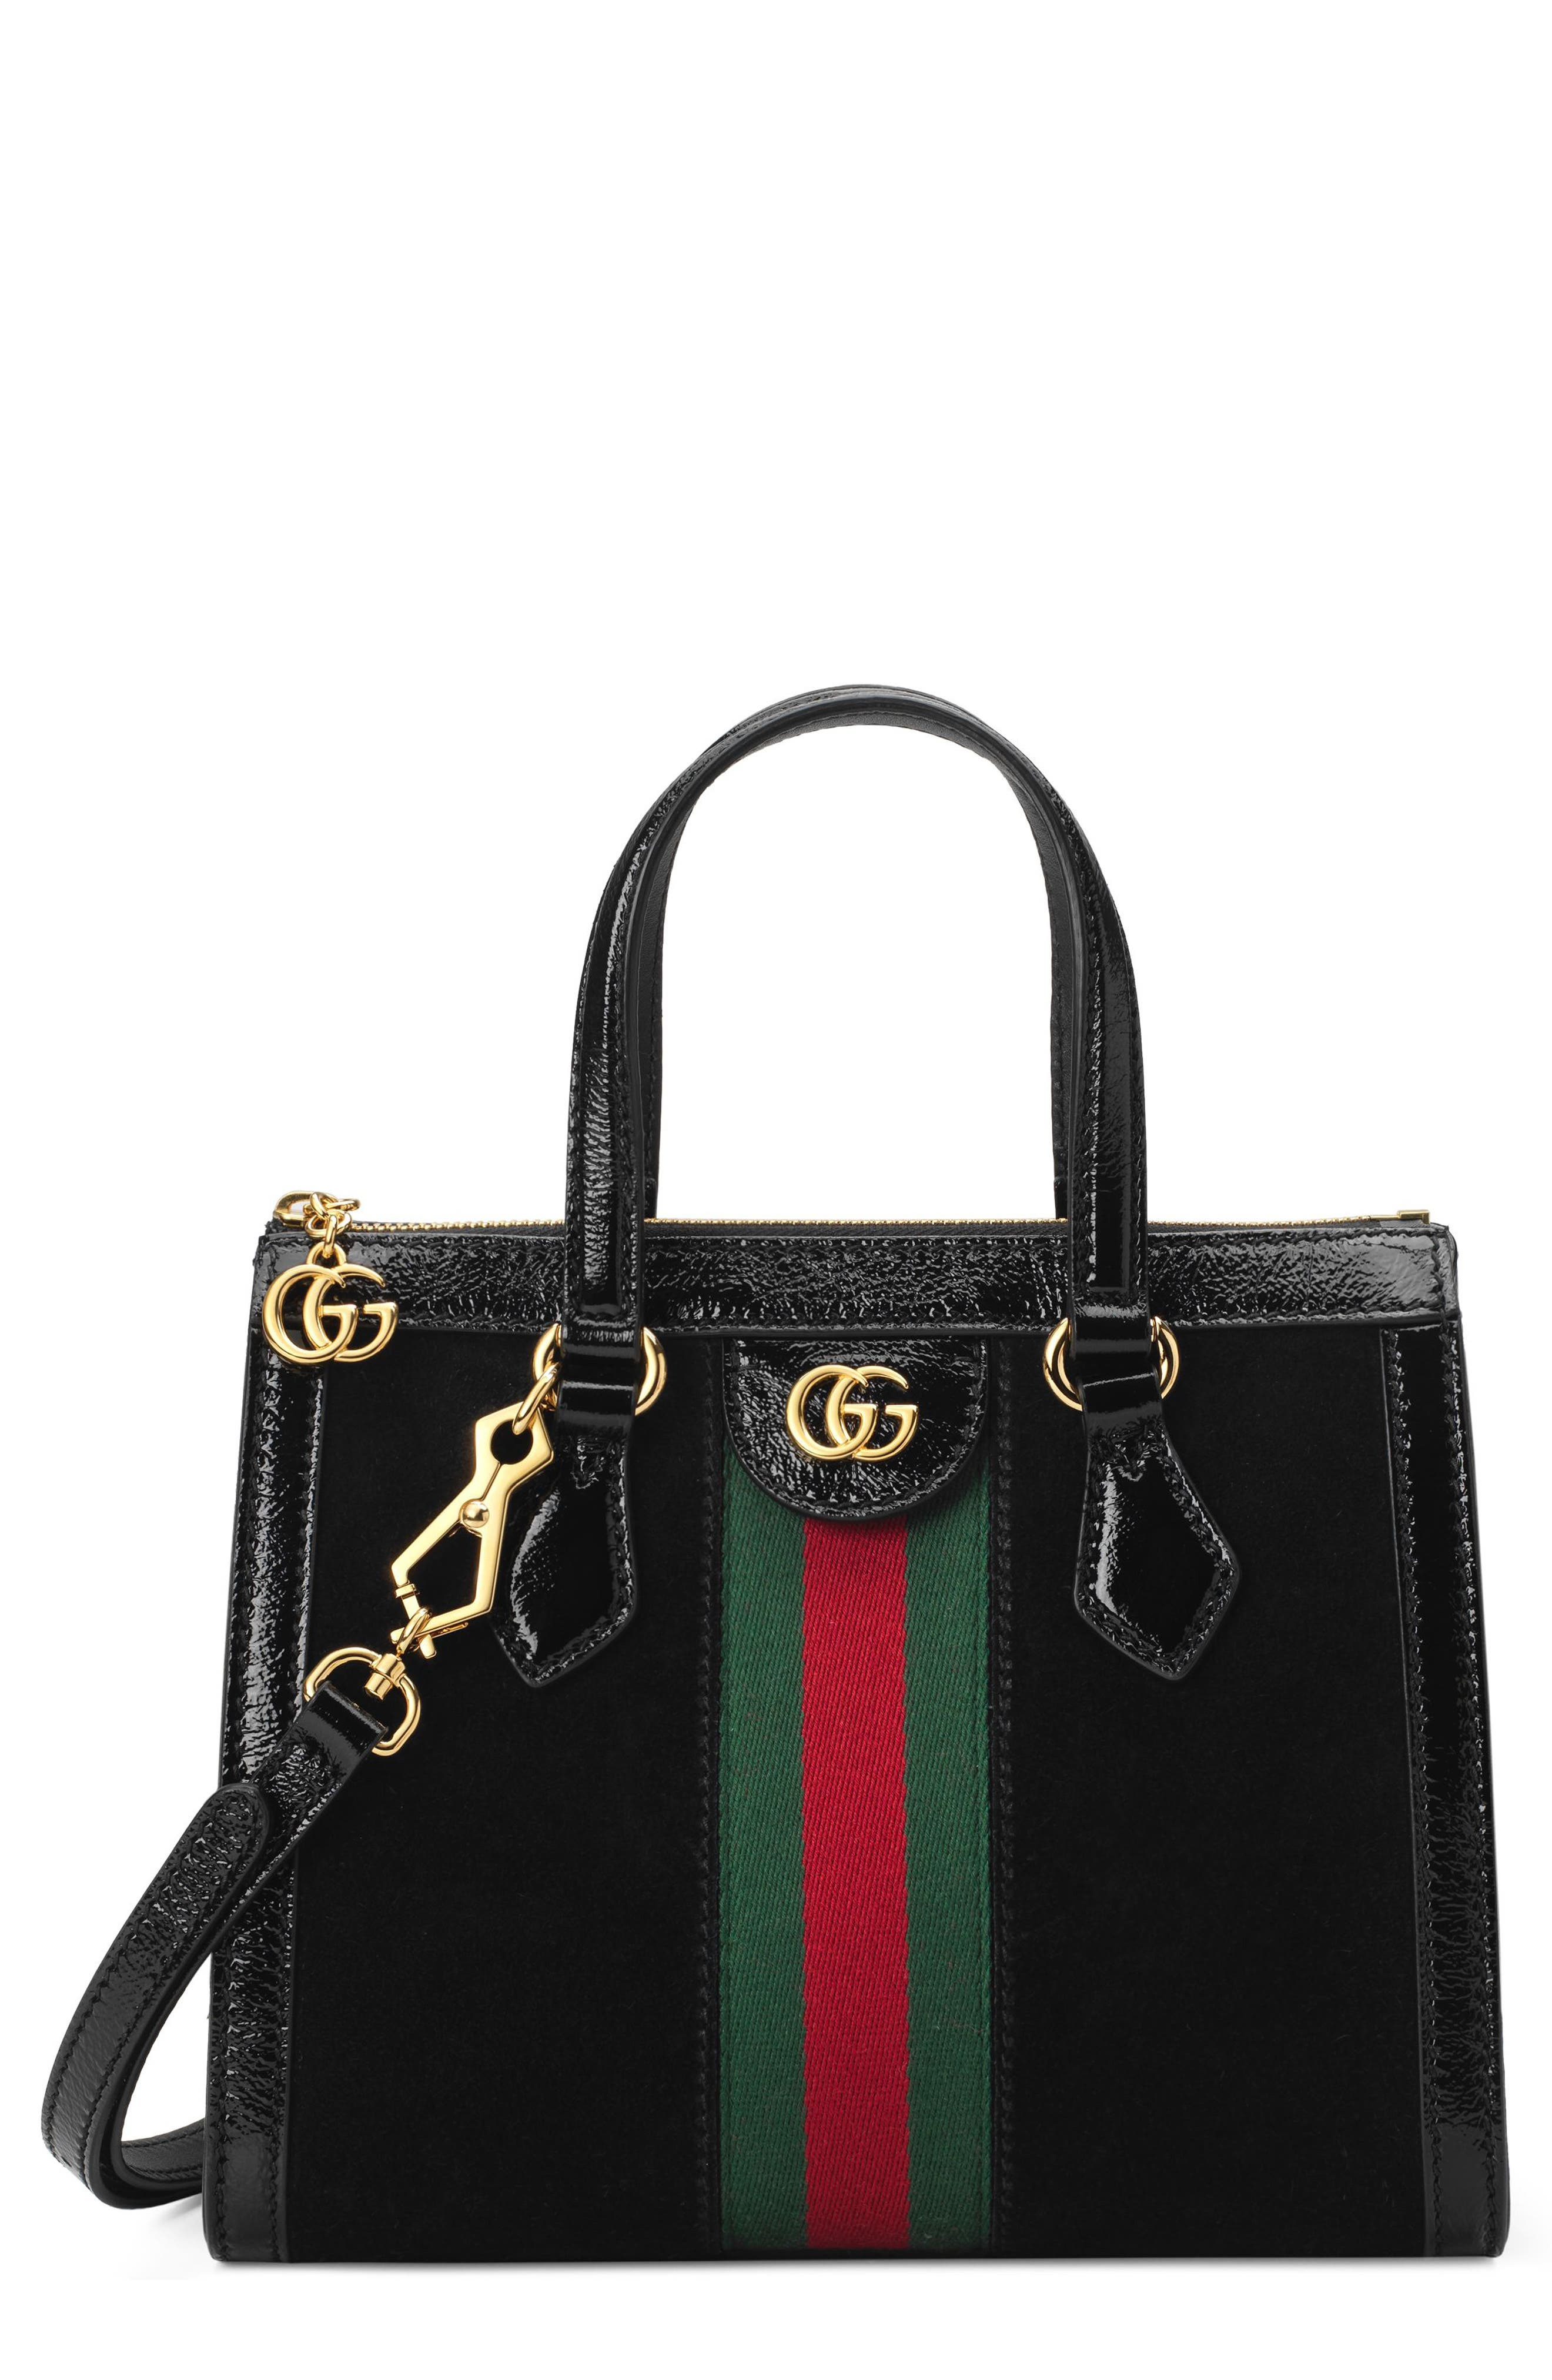 Small Ophidia House Web Suede Satchel - Black in Nero/ Vert/ Red